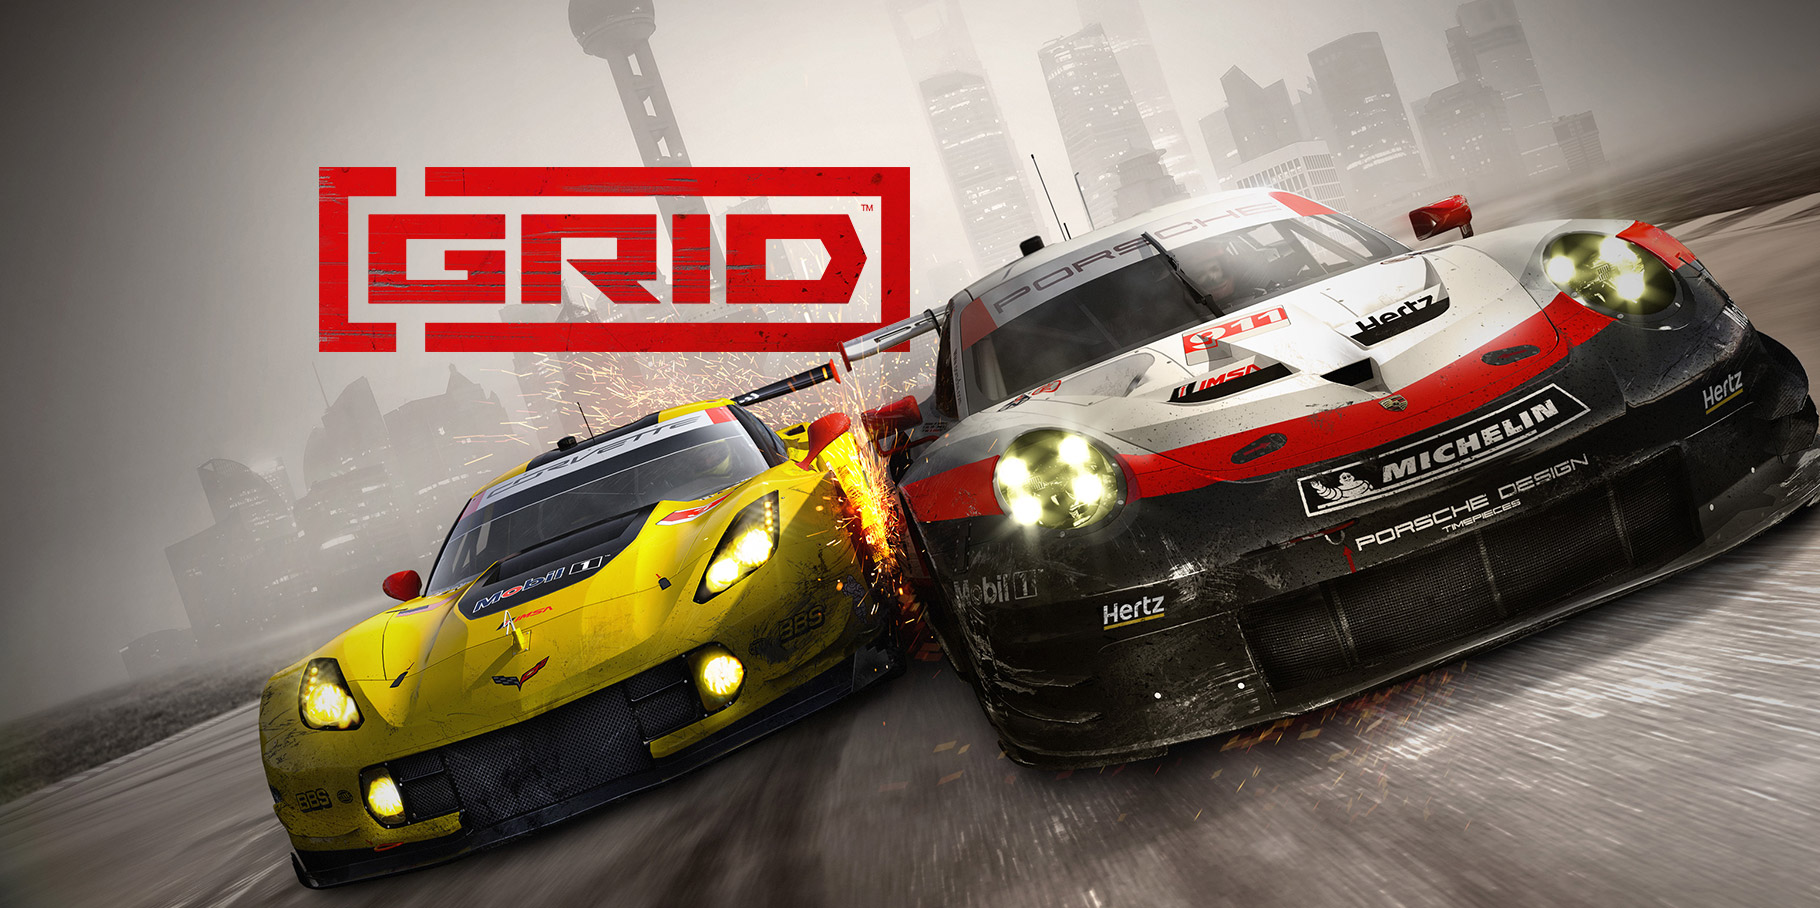 GRID game poster